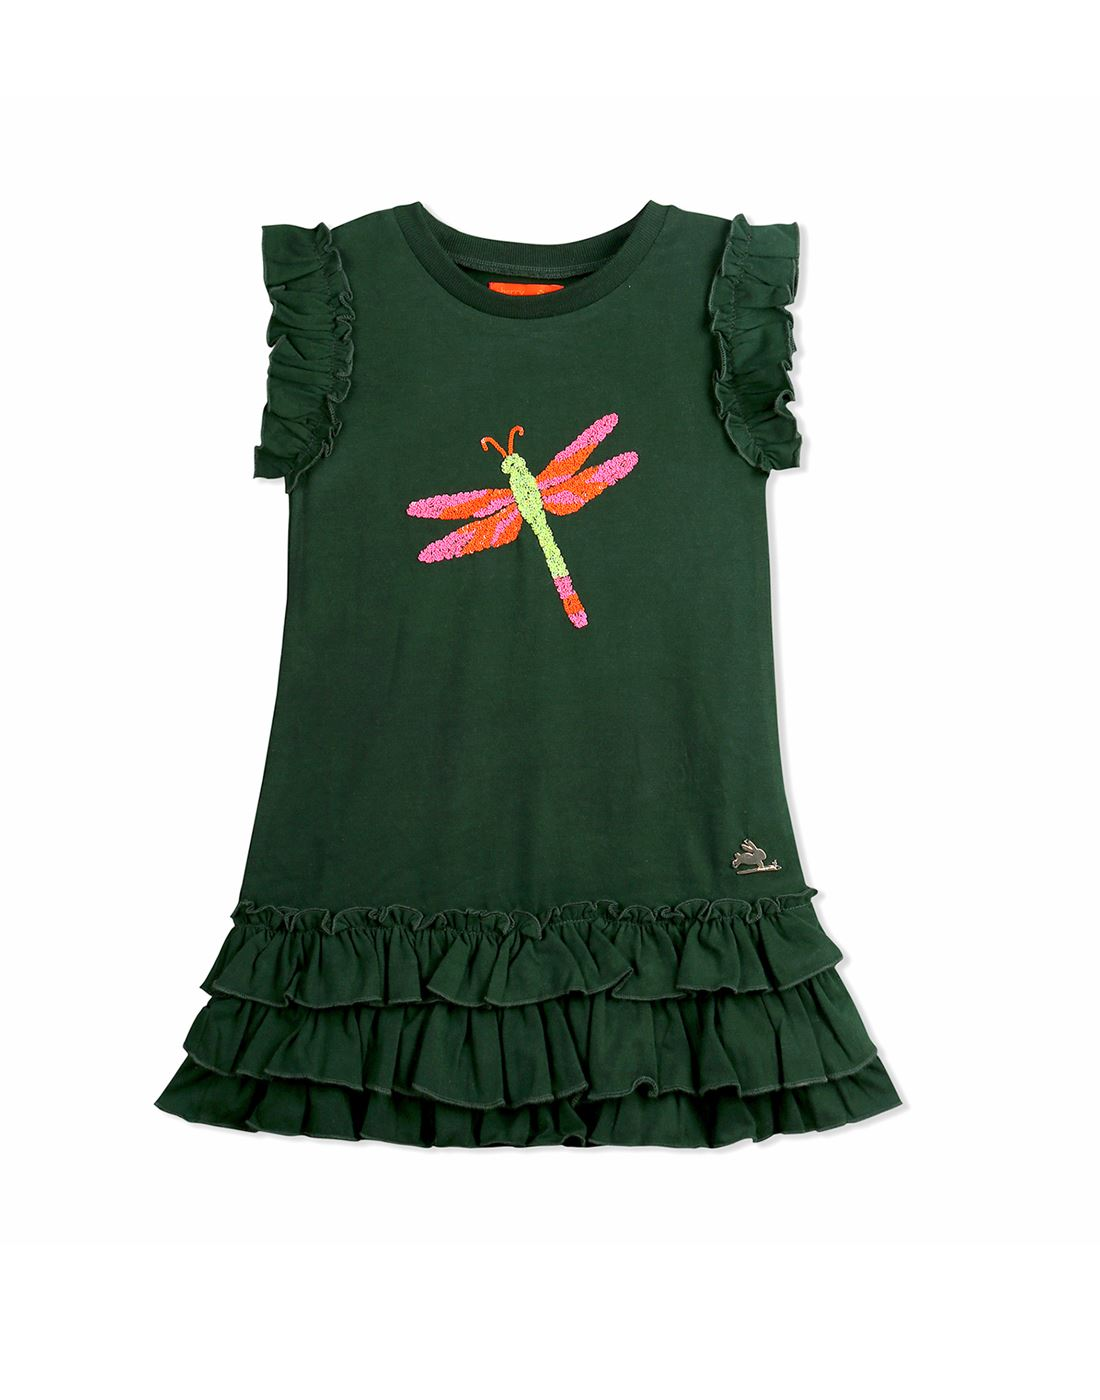 Cherry Crumble California Casual Wear Applique Girls Dresses